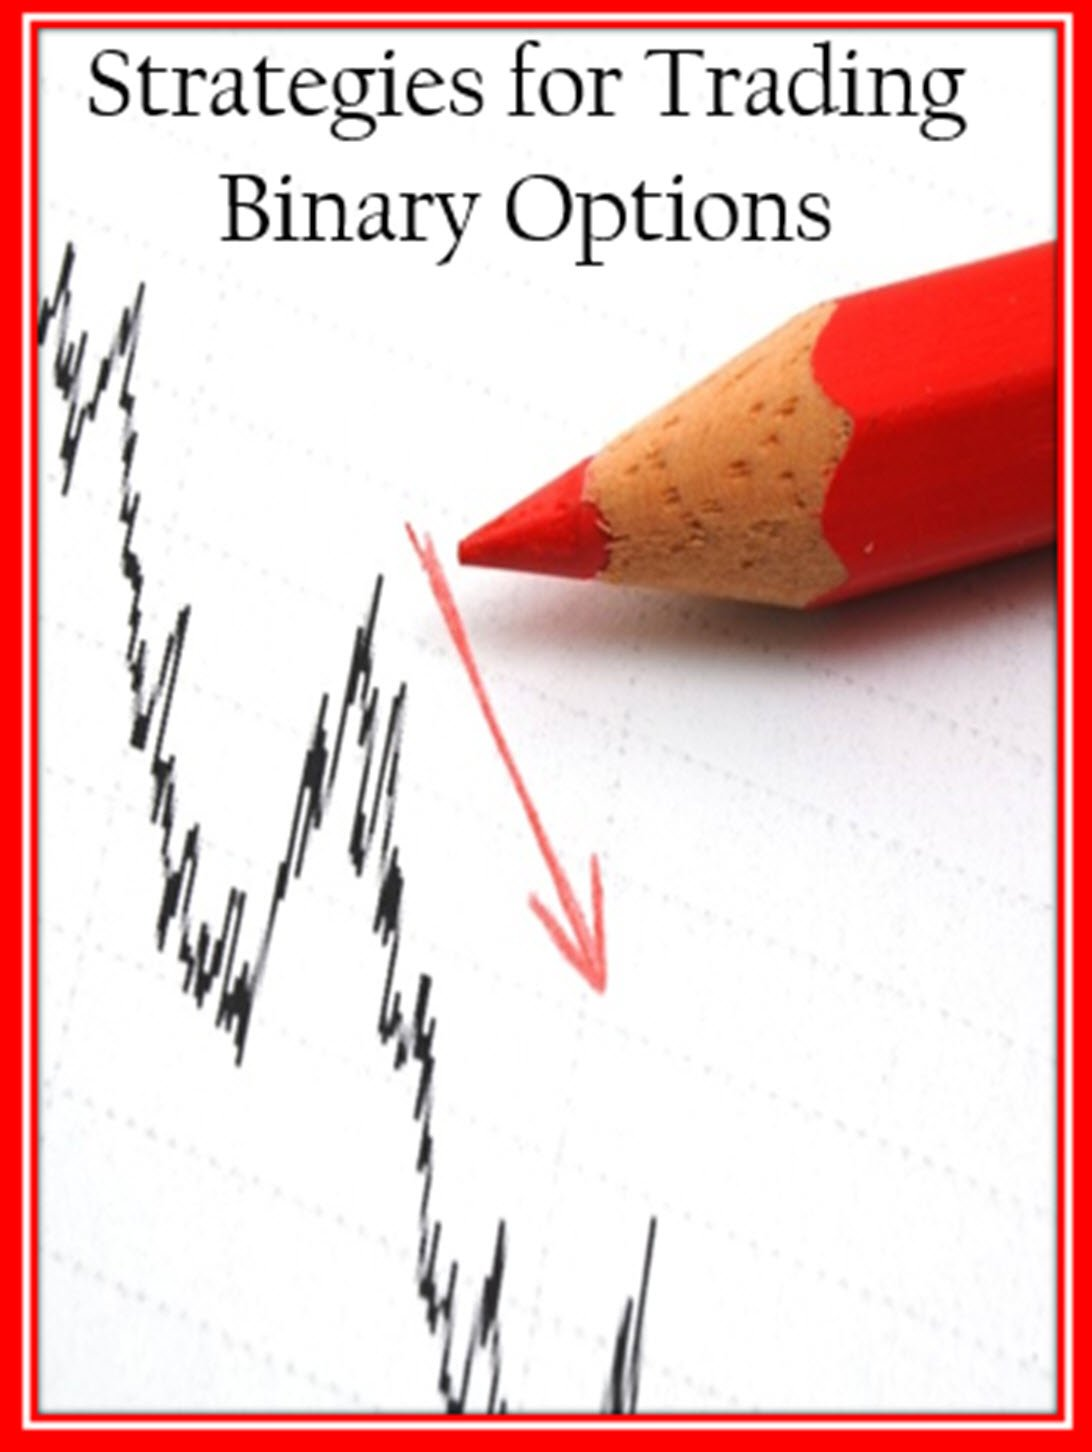 Just Released- Strategies for Trading Binary Options